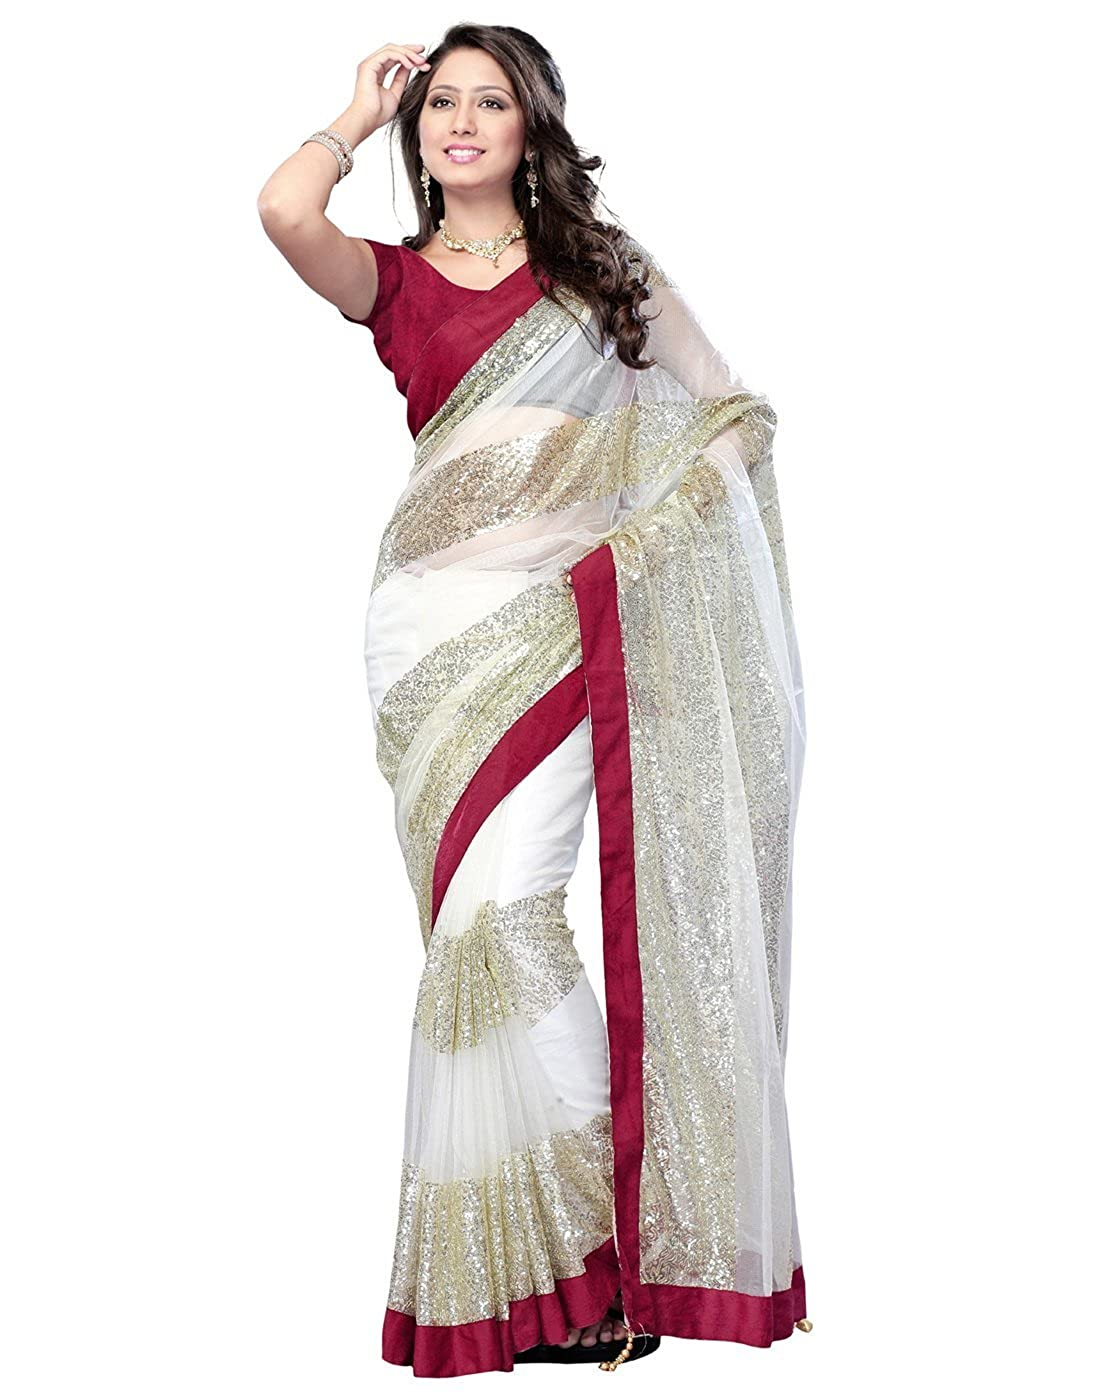 Lookslady Women's Designer Party Wear Embroidered Brasso Saree Sari Blouse Webdeal Services